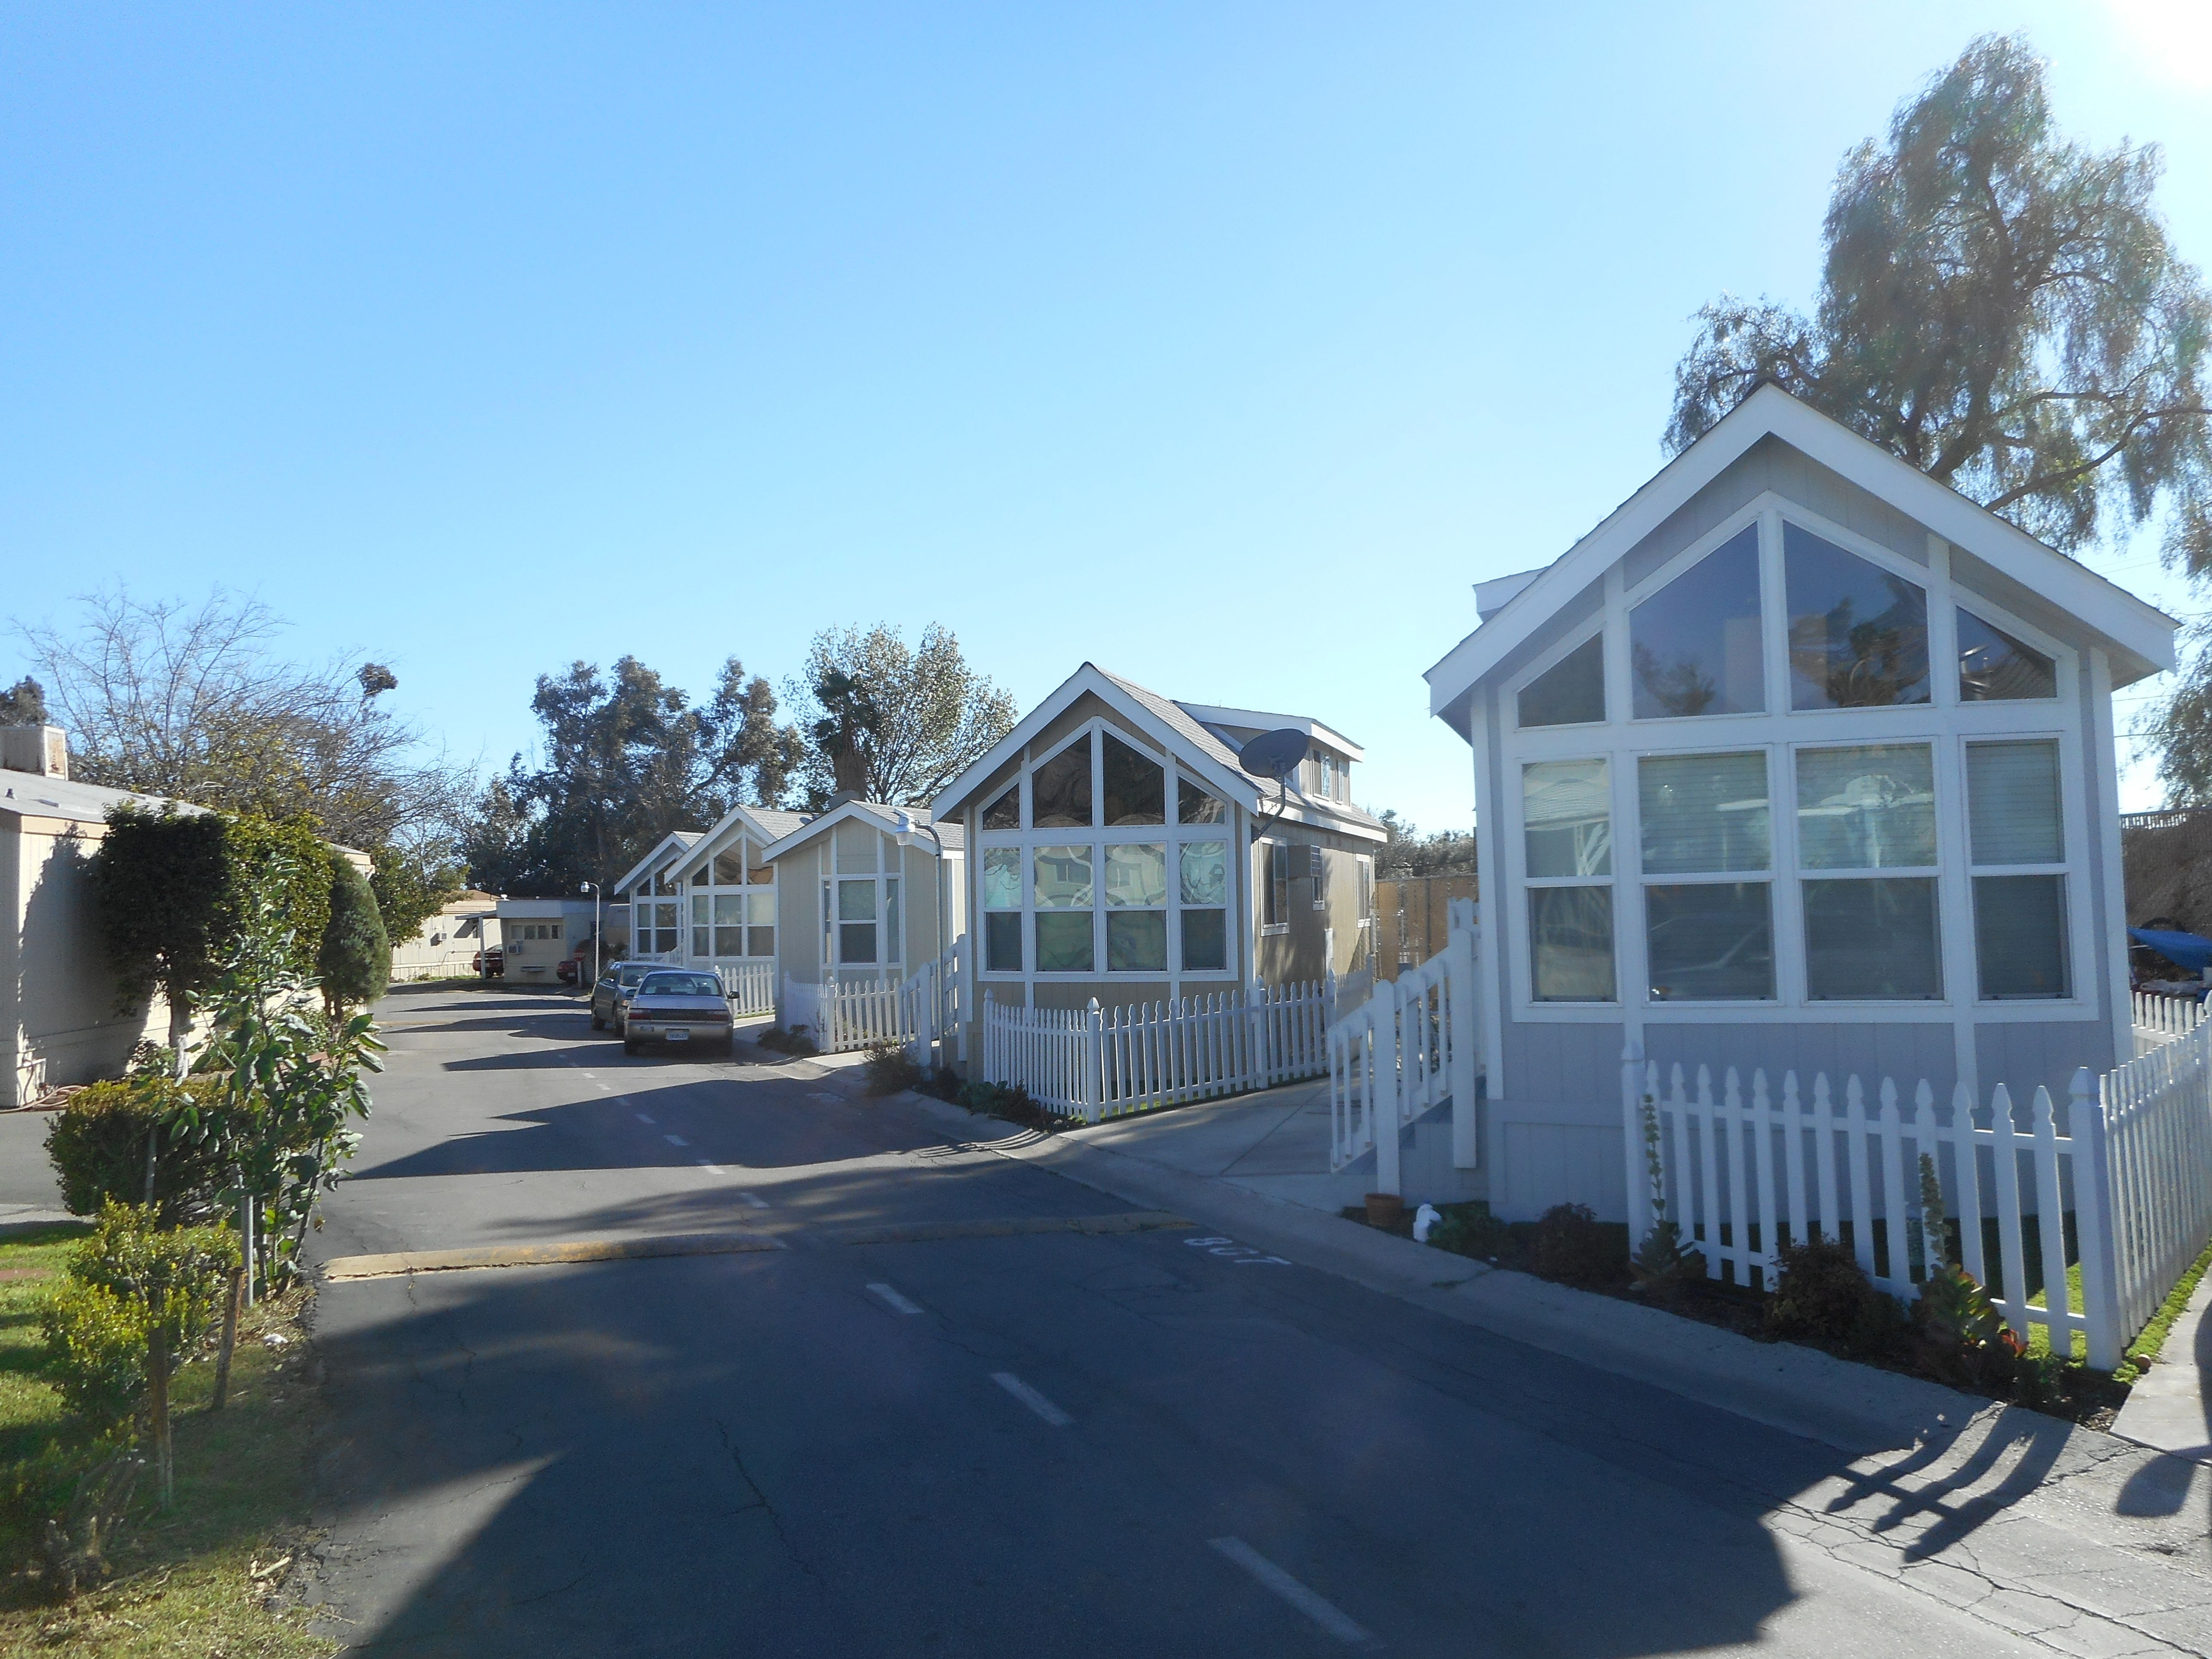 After A Trailer Court With New Park Models As Affordable Rentals In Los Angeles Ca Tiny House Affordable Rentals Tiny House Village